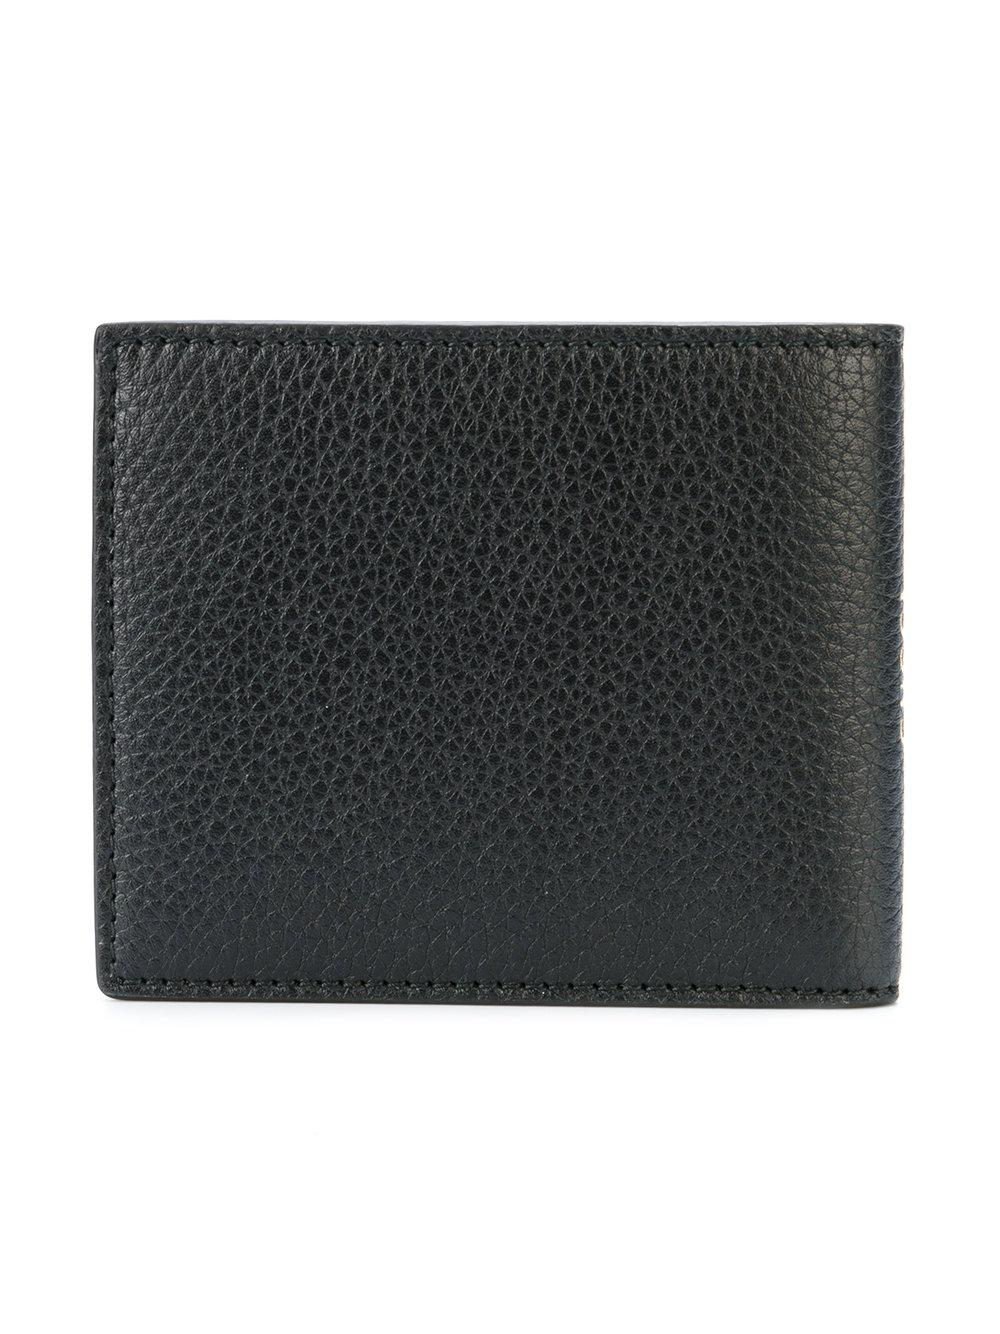 57d7db20ae7 Gallery. Previously sold at  Farfetch · Men s Continental Wallets ...